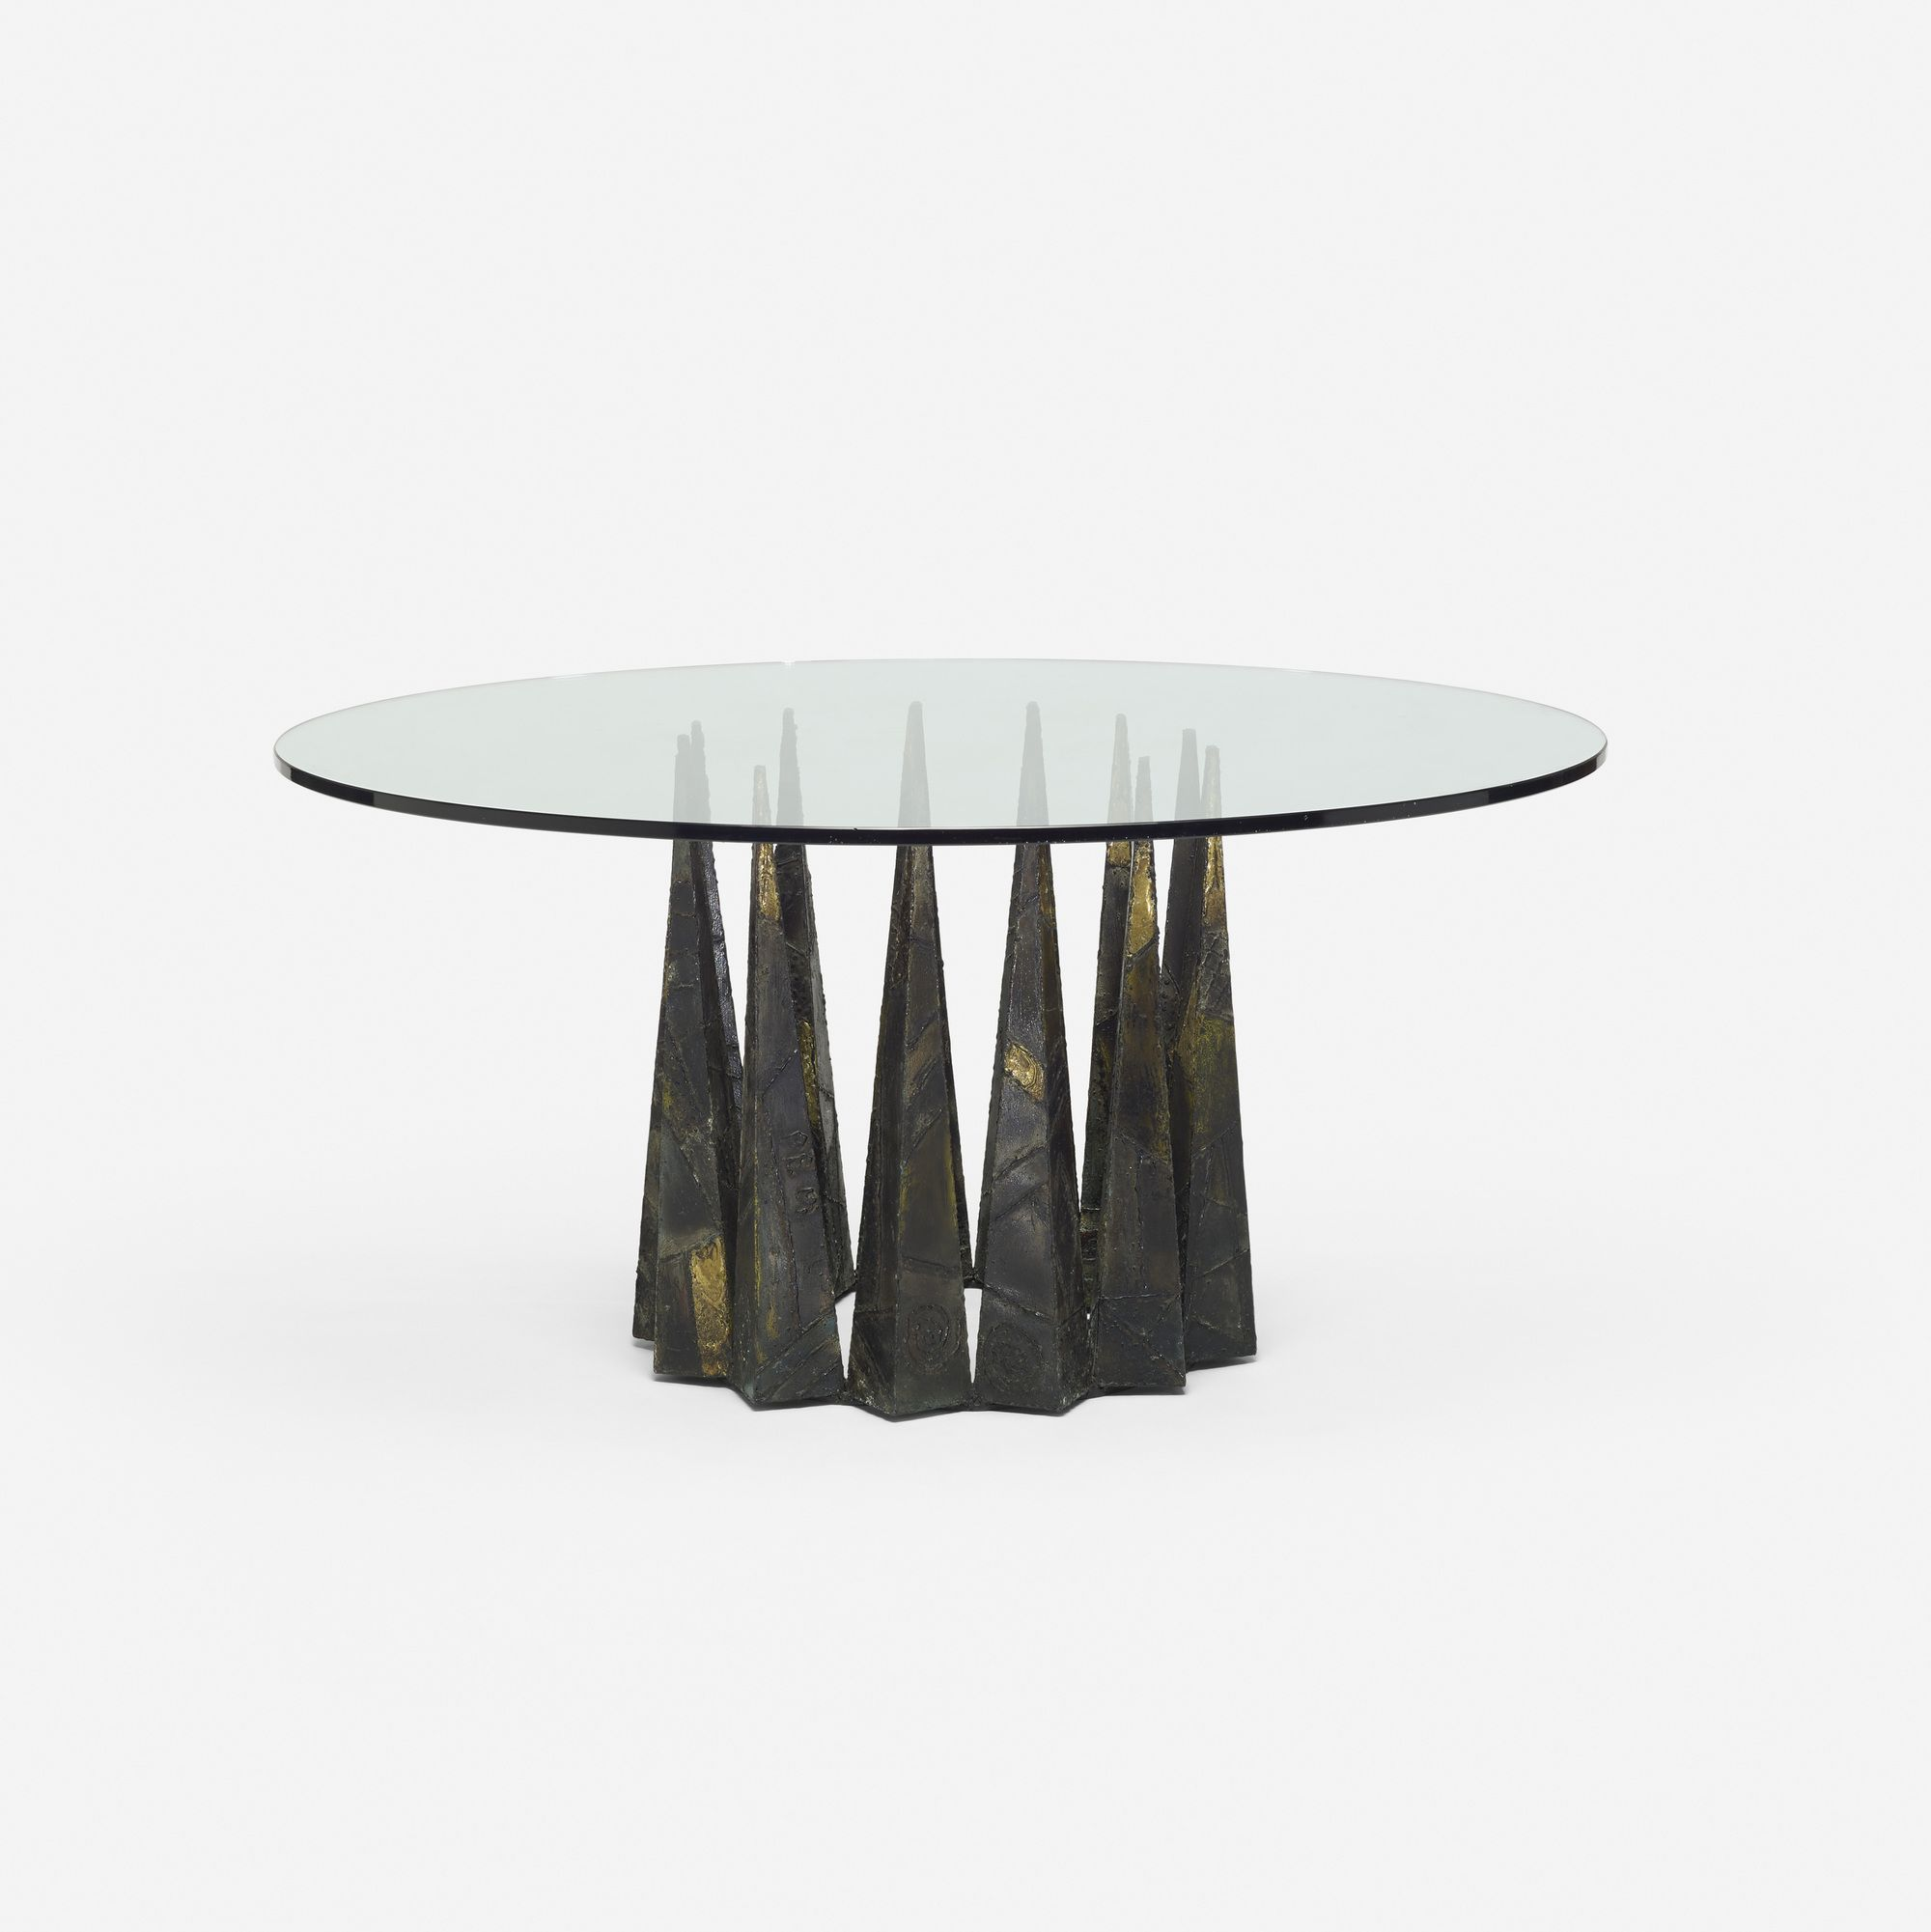 Lot 168 Paul Evans Dining Table 1967 Welded And Enameled Steel